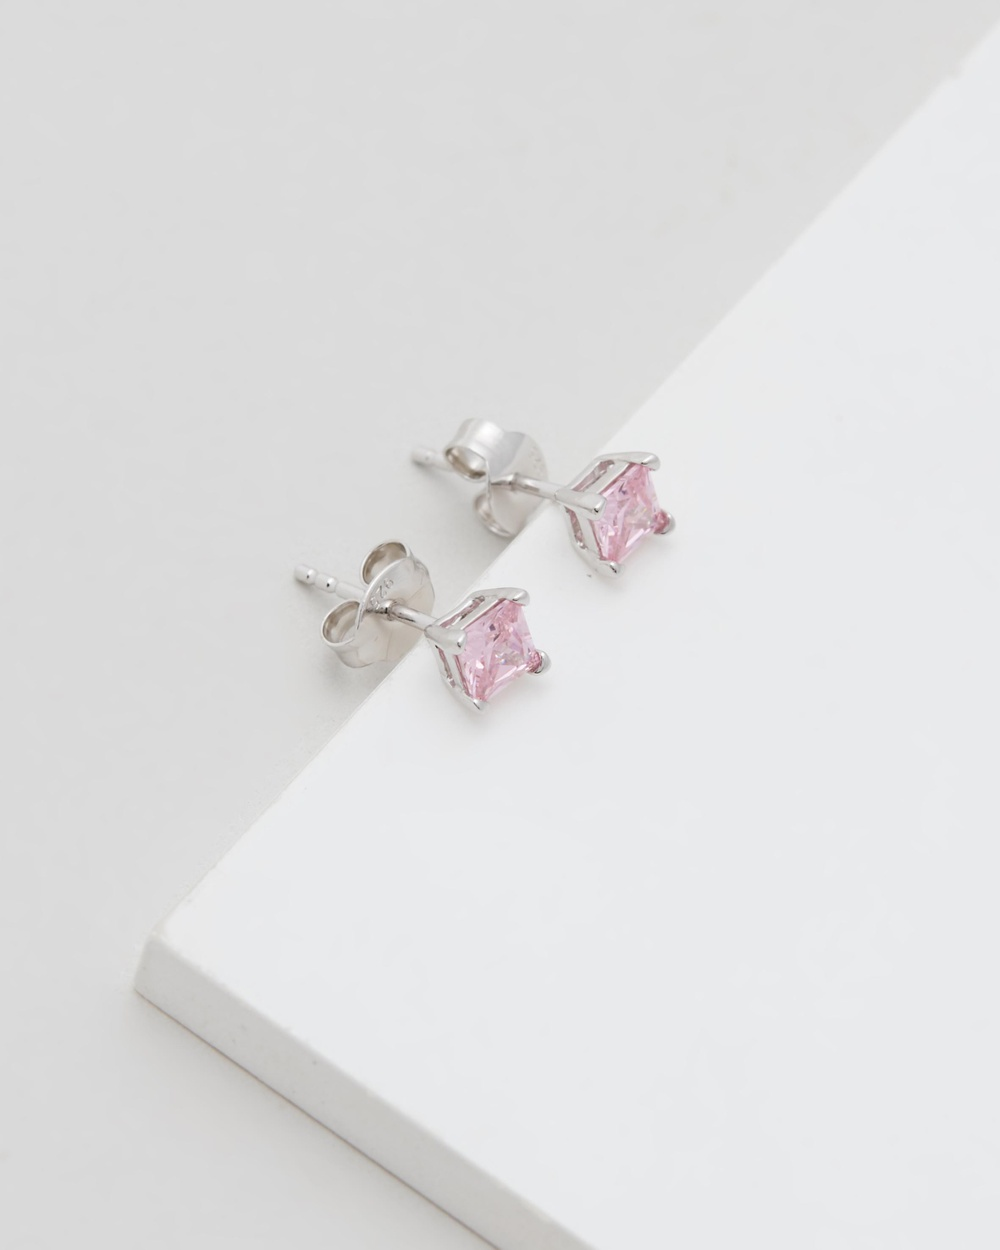 Michael Hill Stud Earrings with Pink Cubic Zirconia Jewellery Sterling Silver